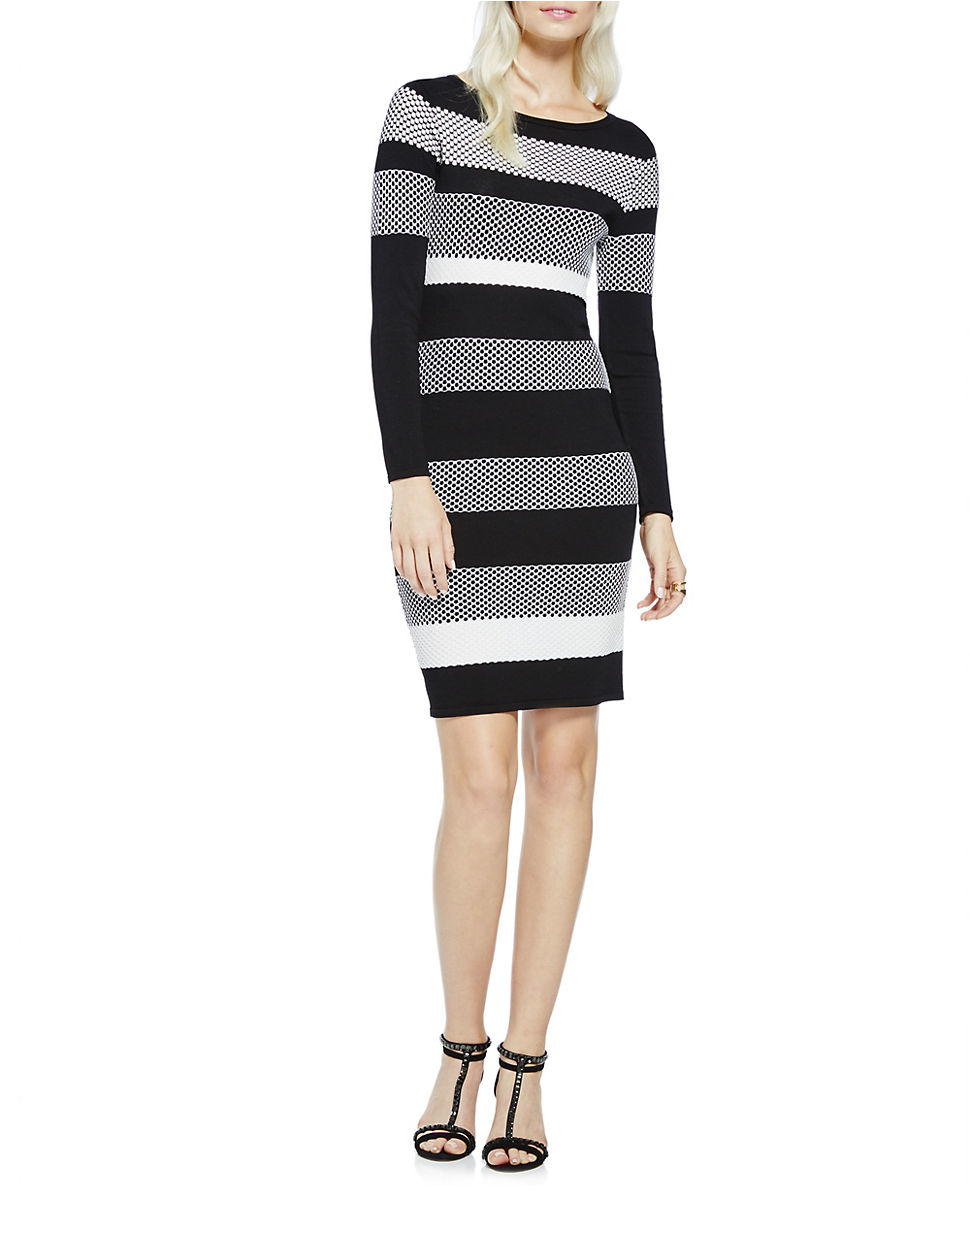 Rachel Roy Sweater Dress